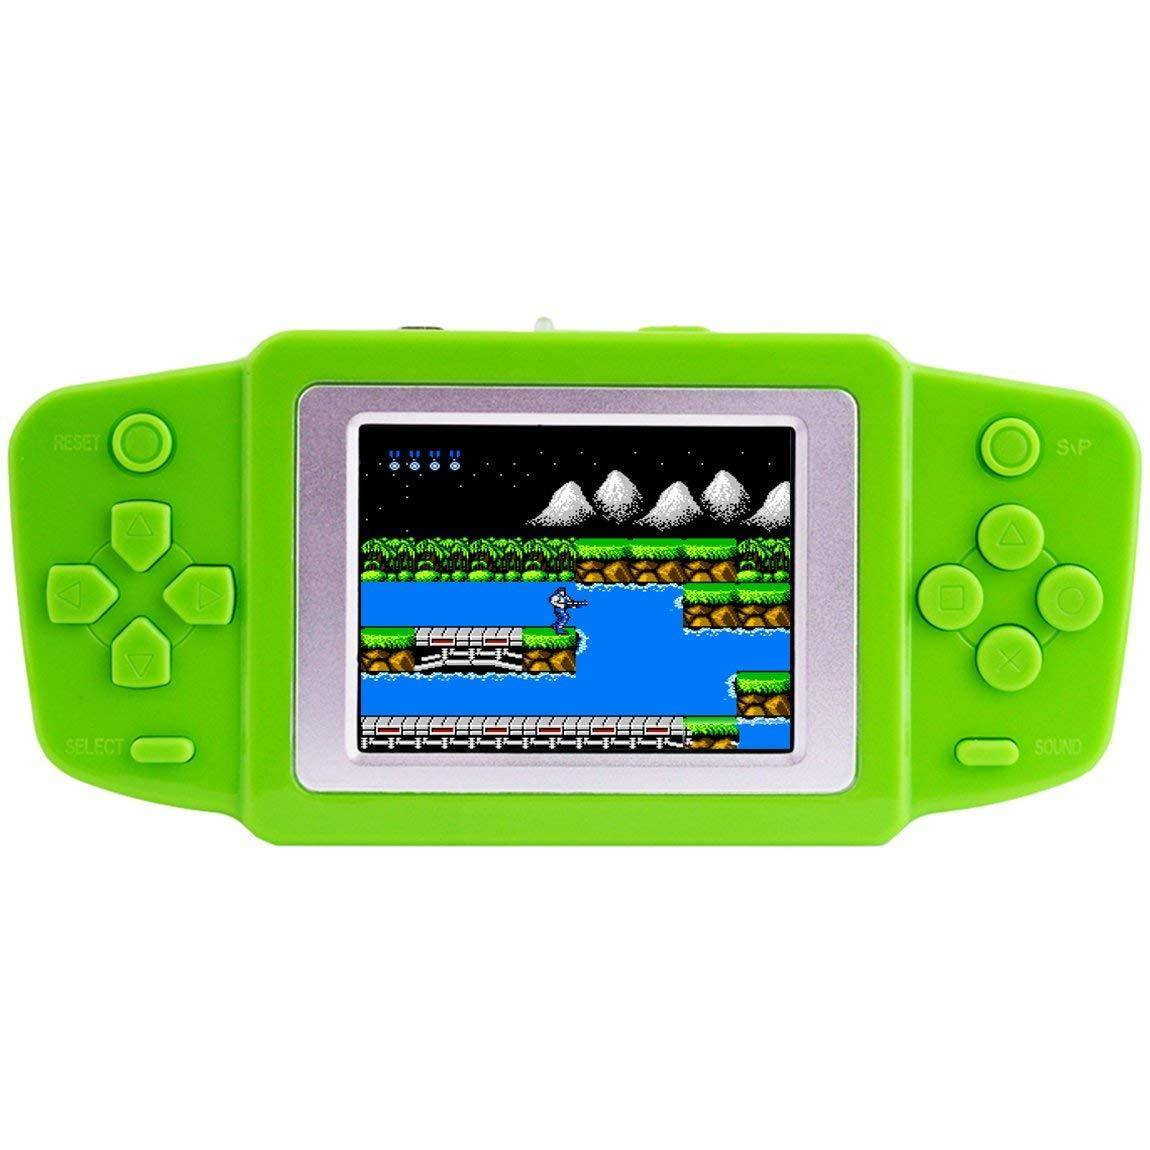 Portable Retro Game Console